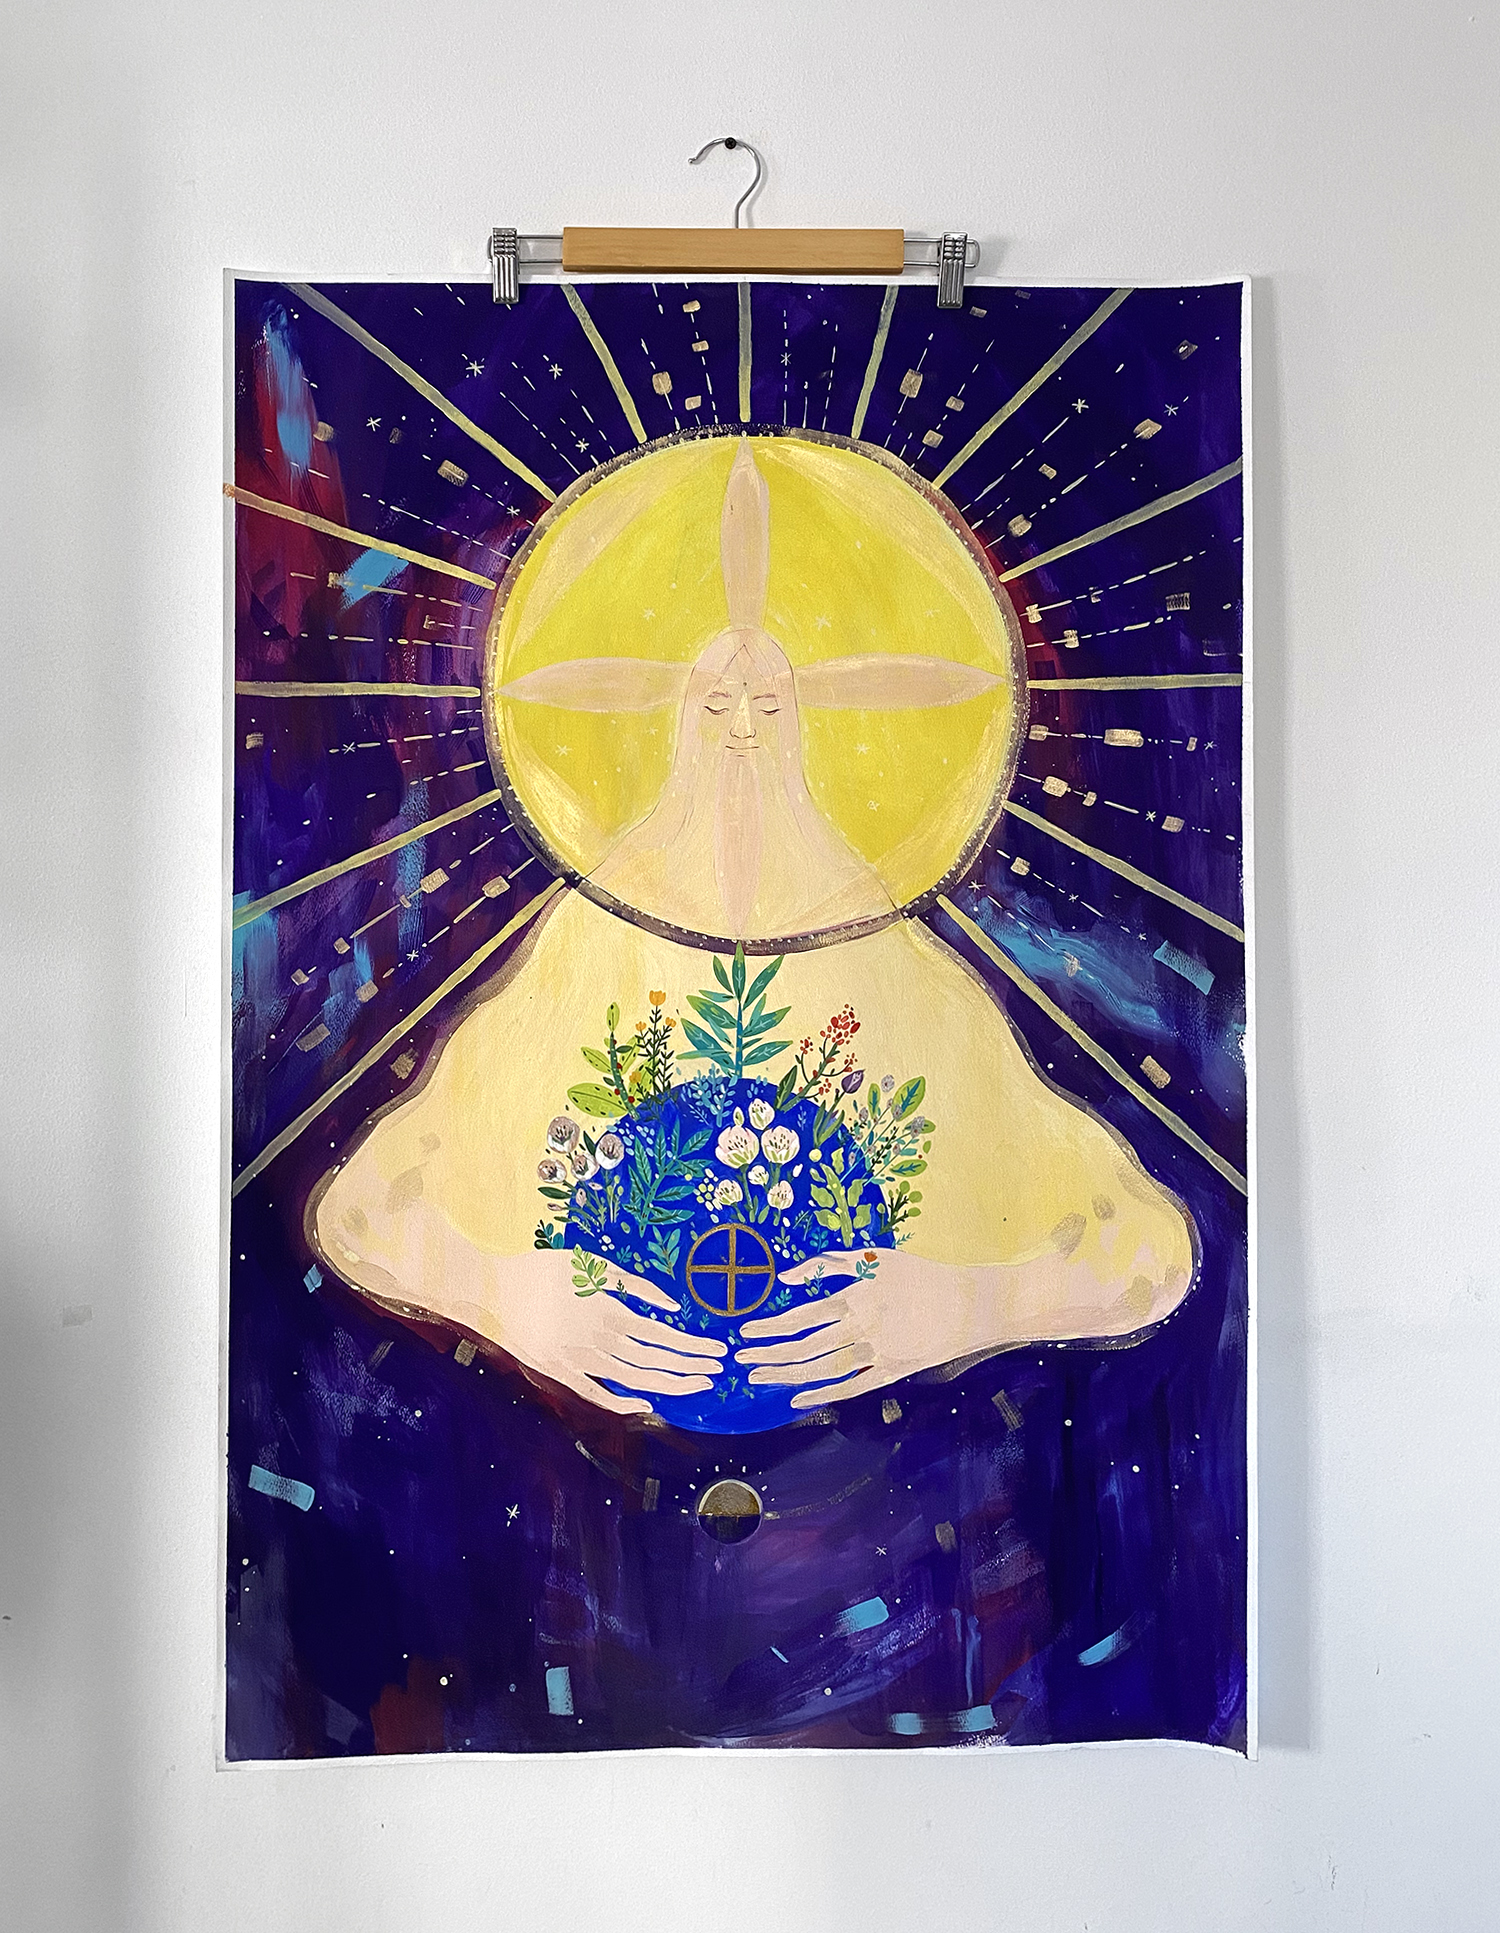 the-holy-sun-on-wall-illustration